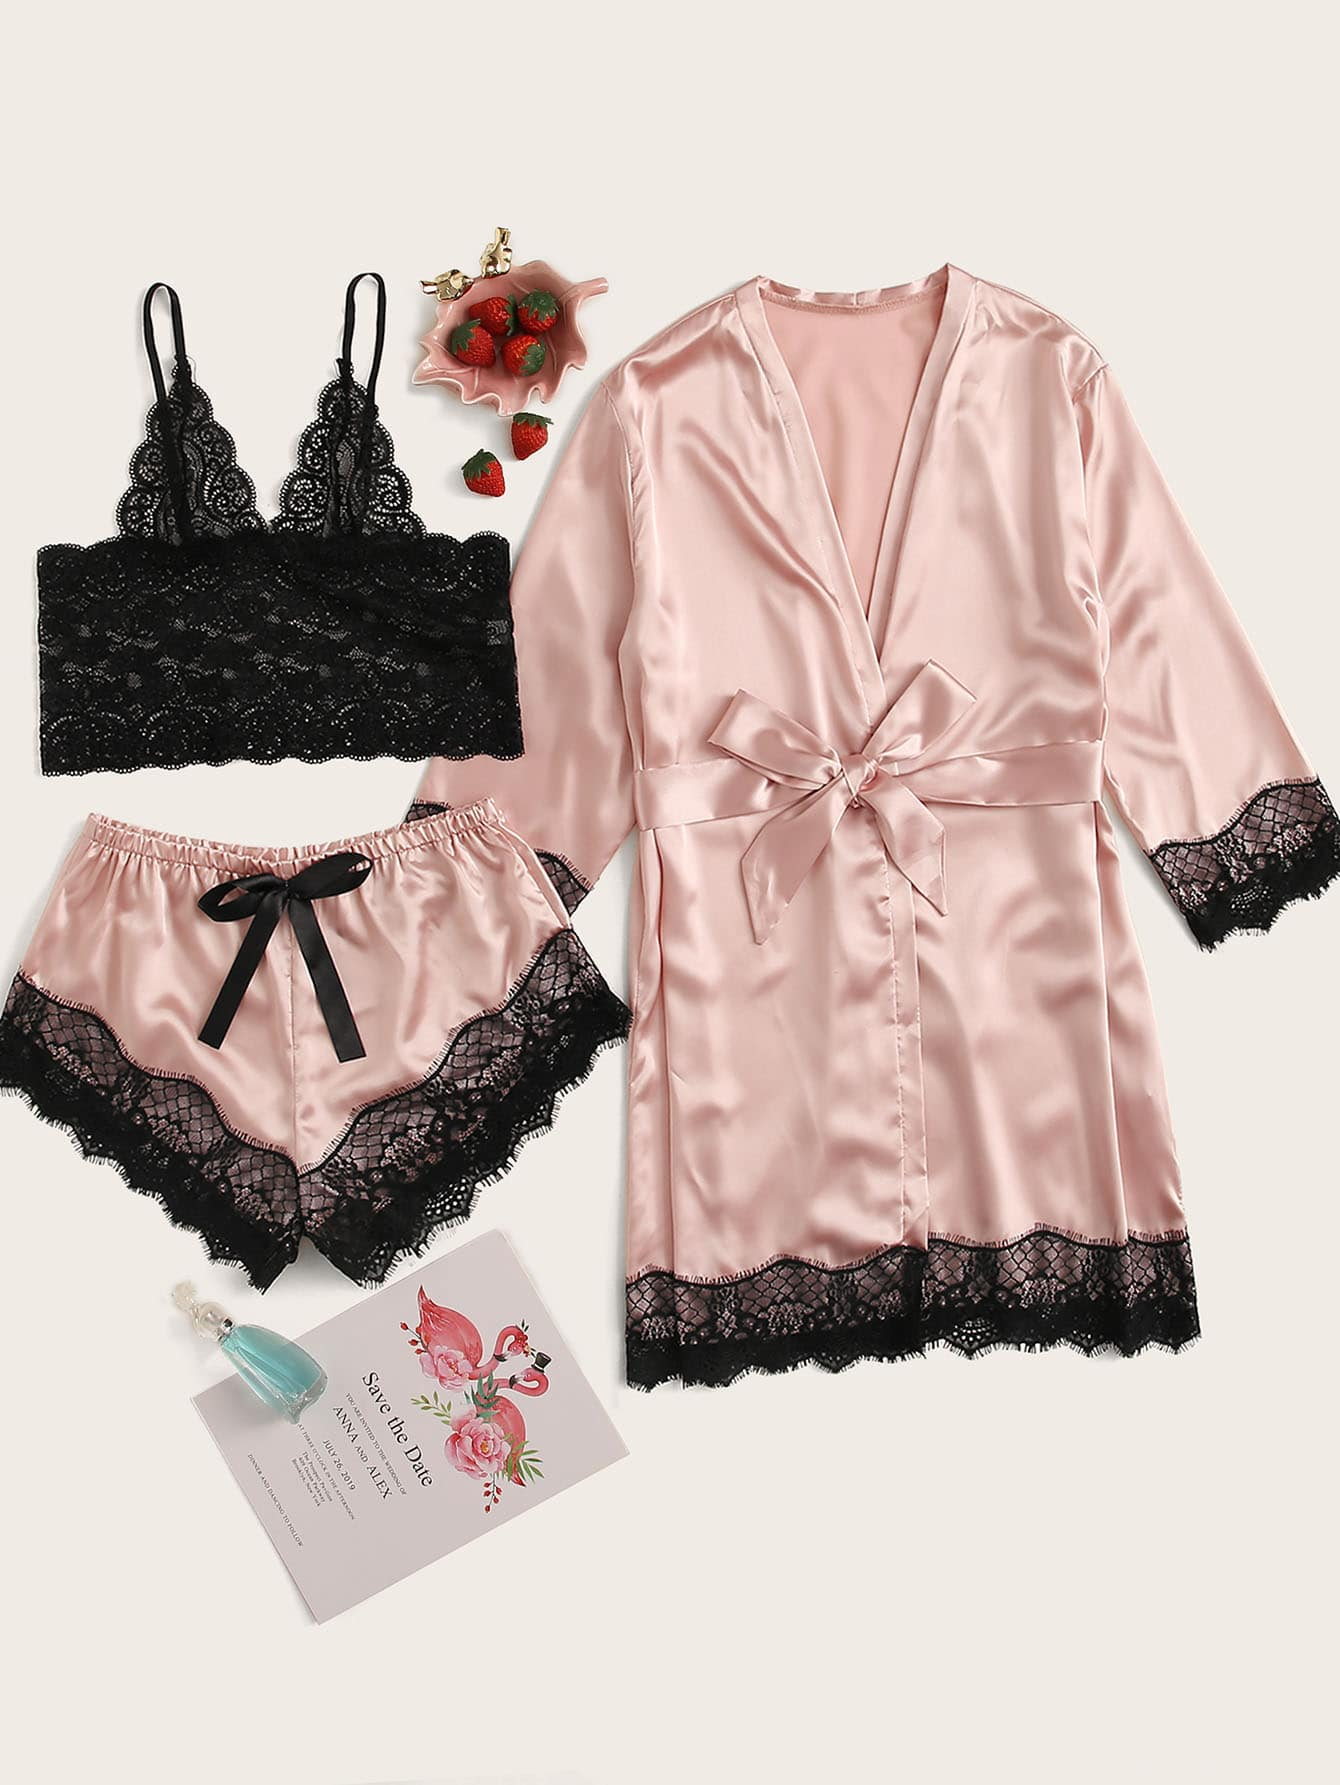 Floral Lace Satin Lingerie Set With Robe